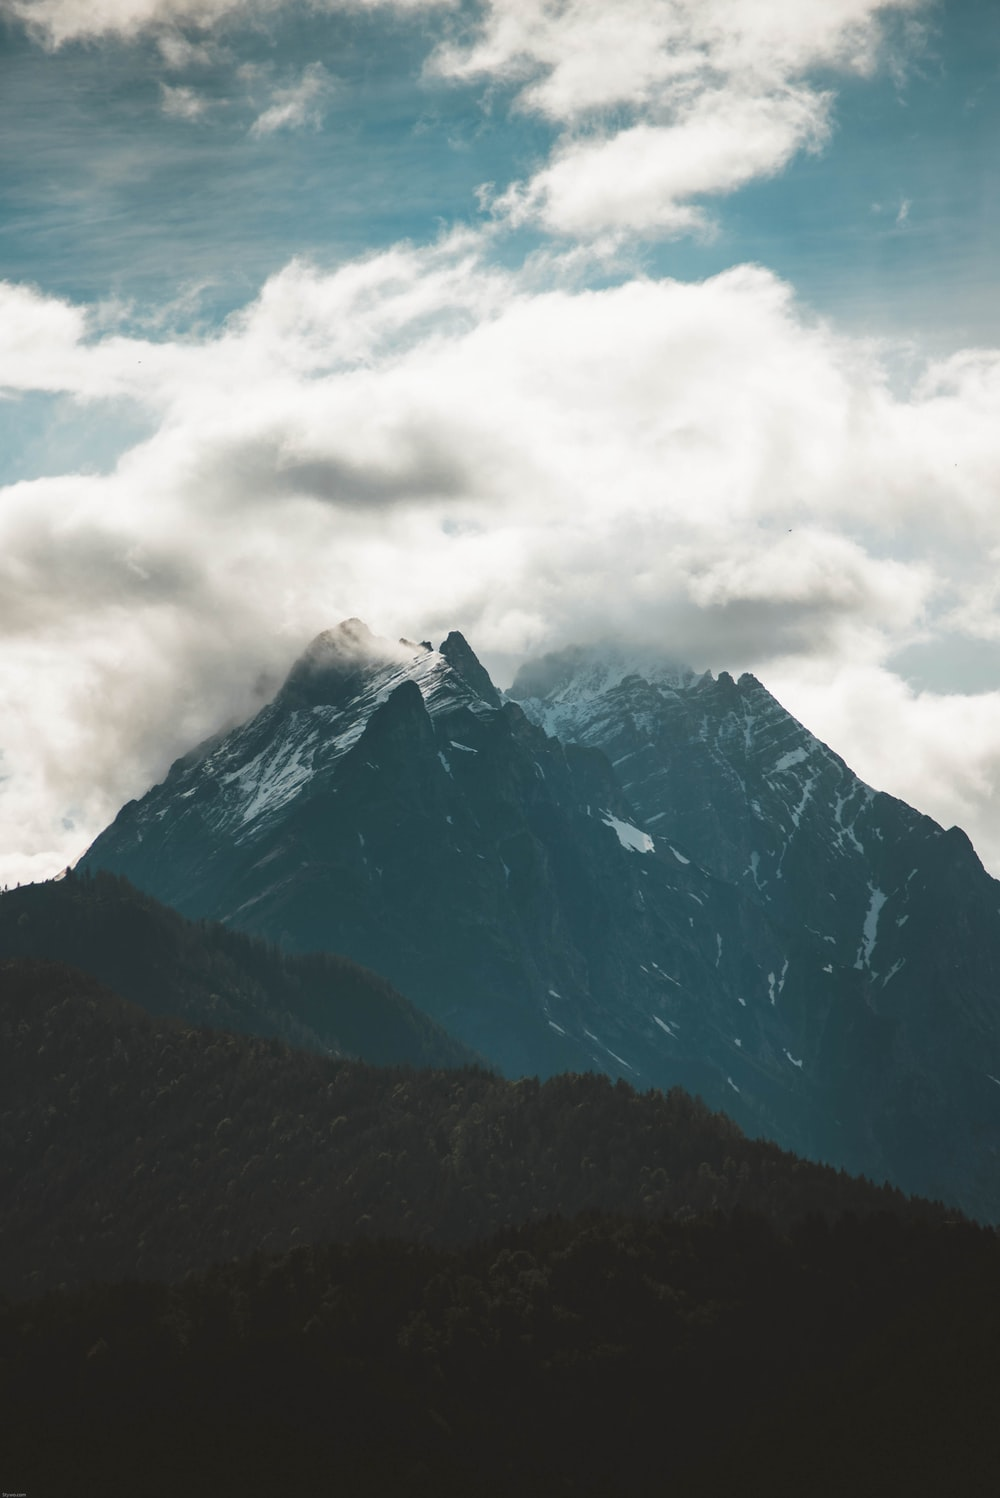 peak of mountain covered by clouds